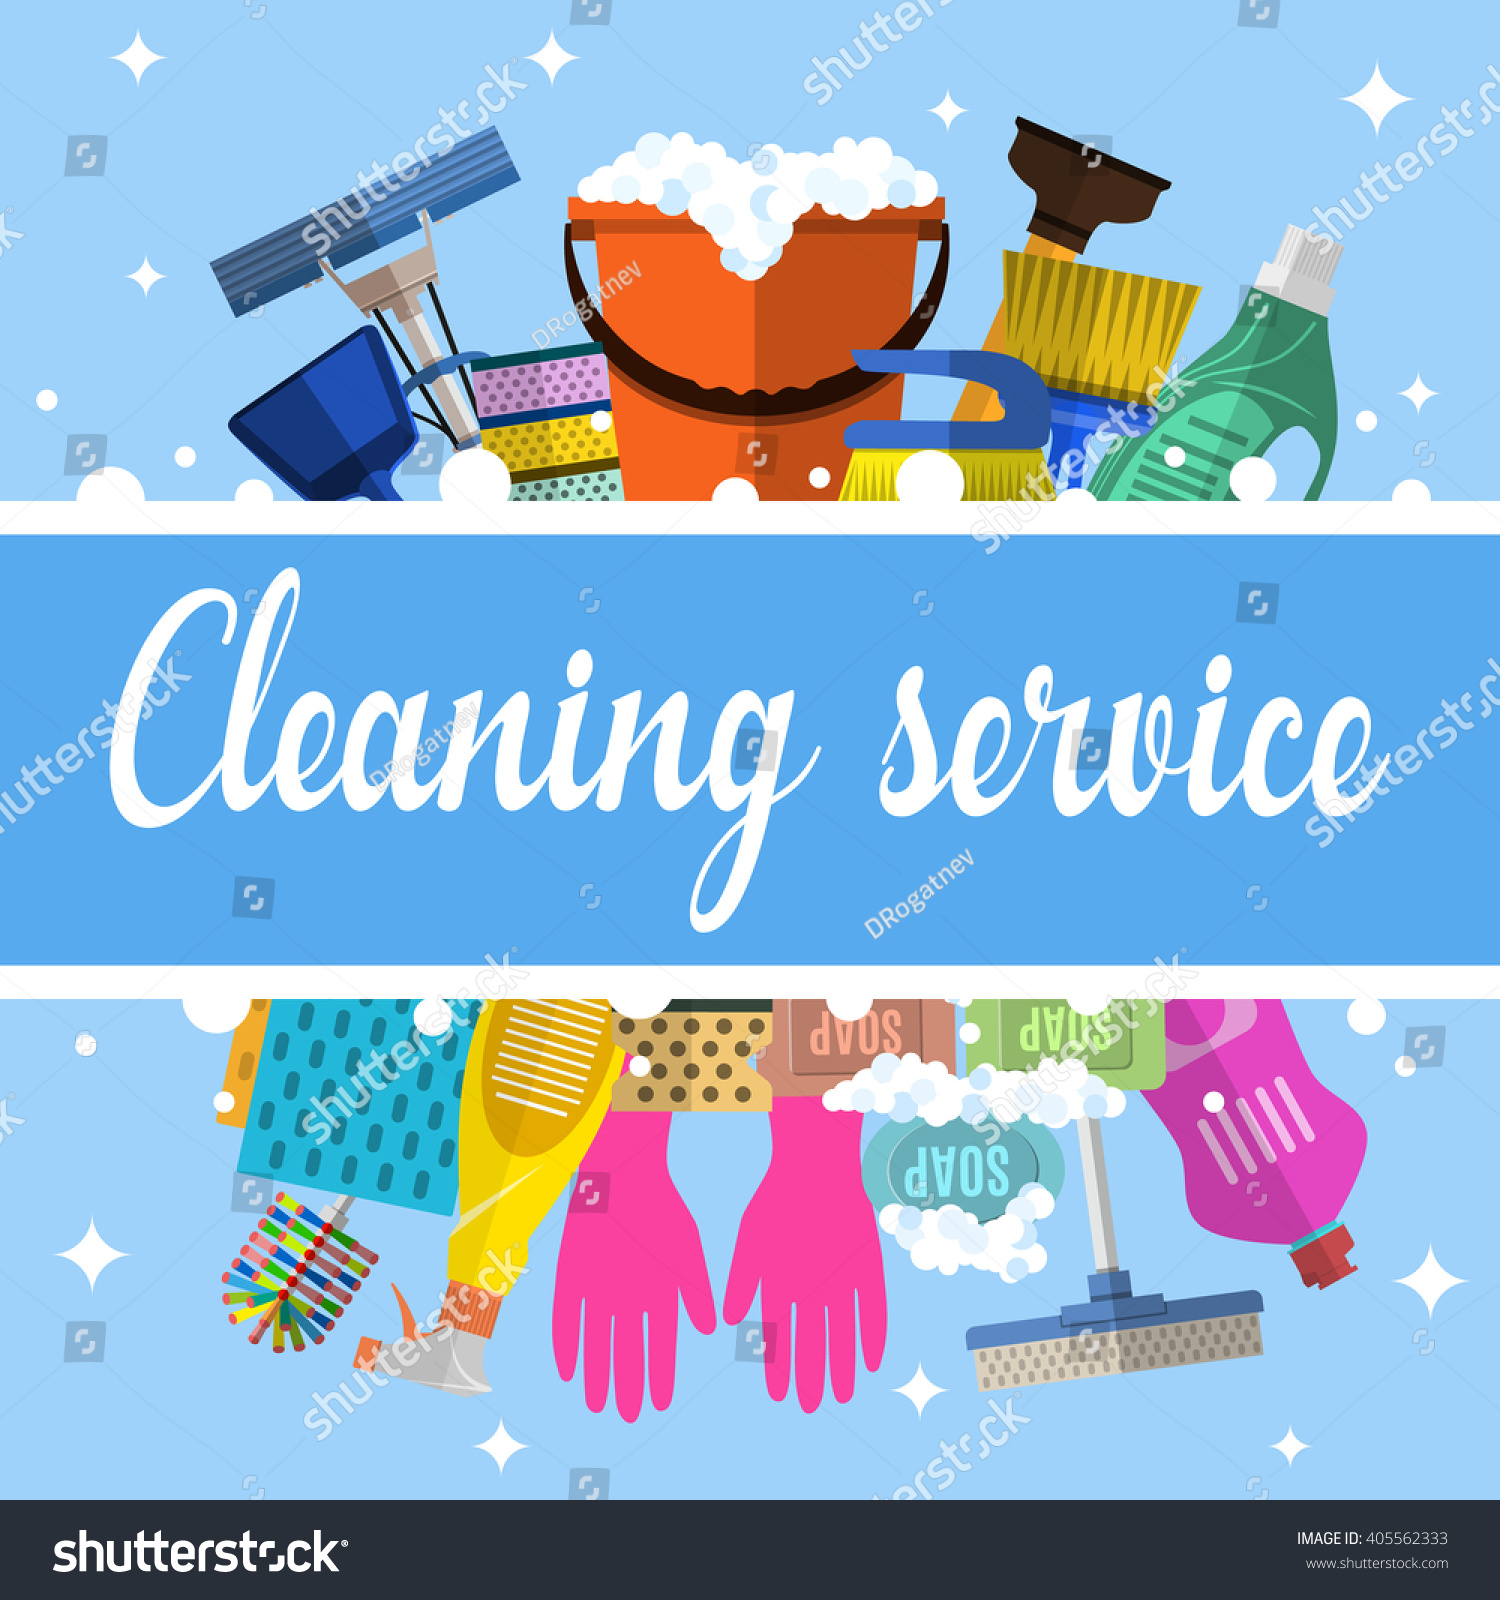 cleaning service flat illustration poster template stock vector cleaning service flat illustration poster template for house cleaning services various cleaning tools